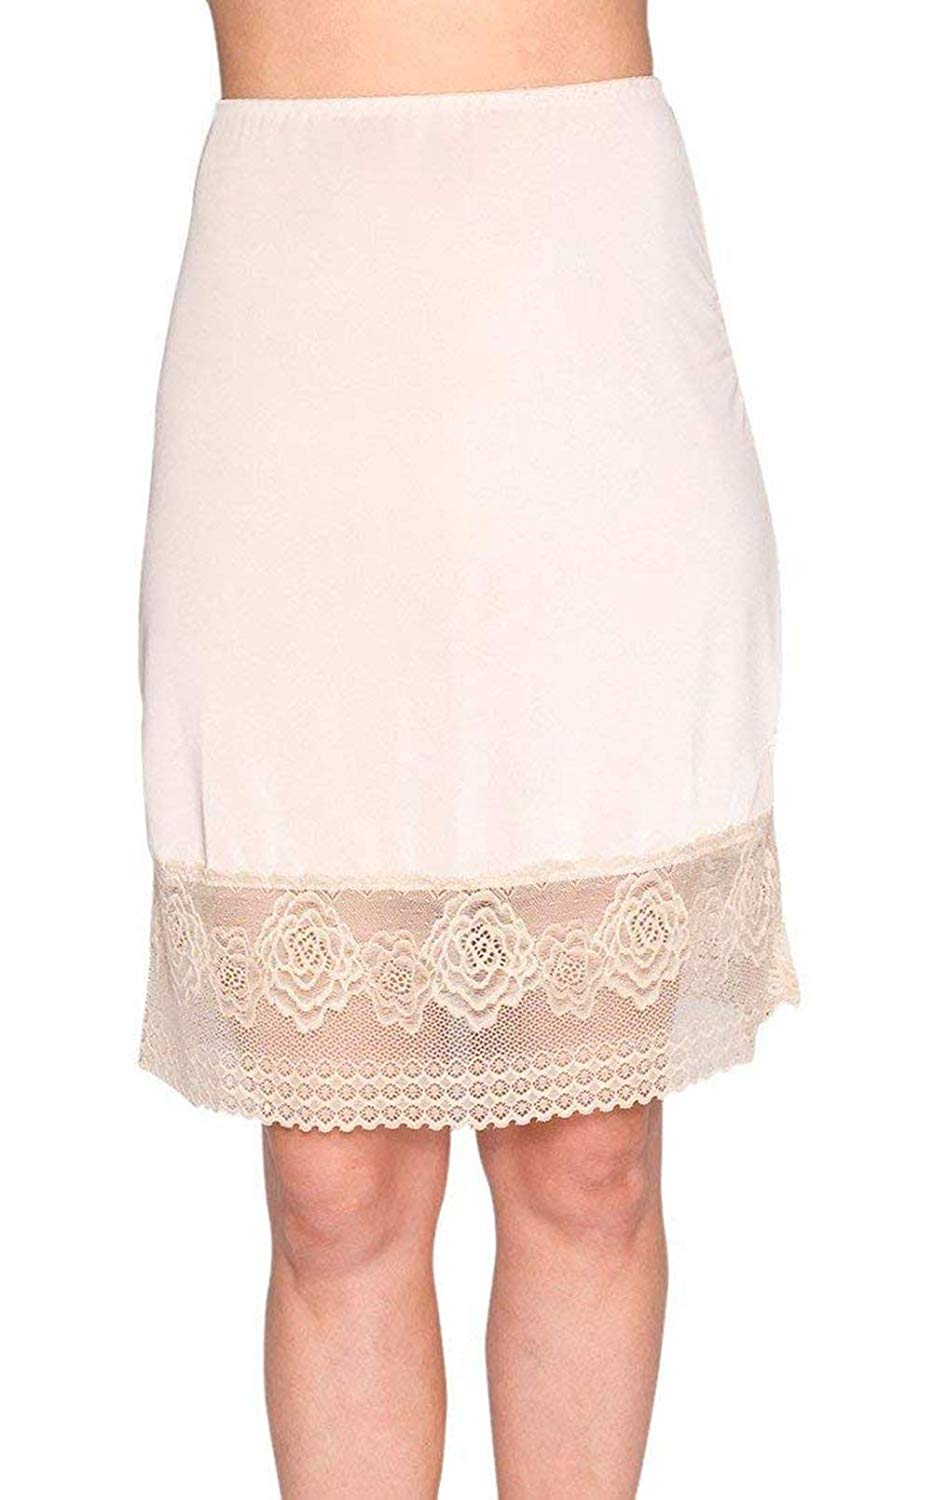 Ma.Lina.Ann Women Anti-Static Lace Trim Snip-it Half Slip Petticoat Slip for Underskirt